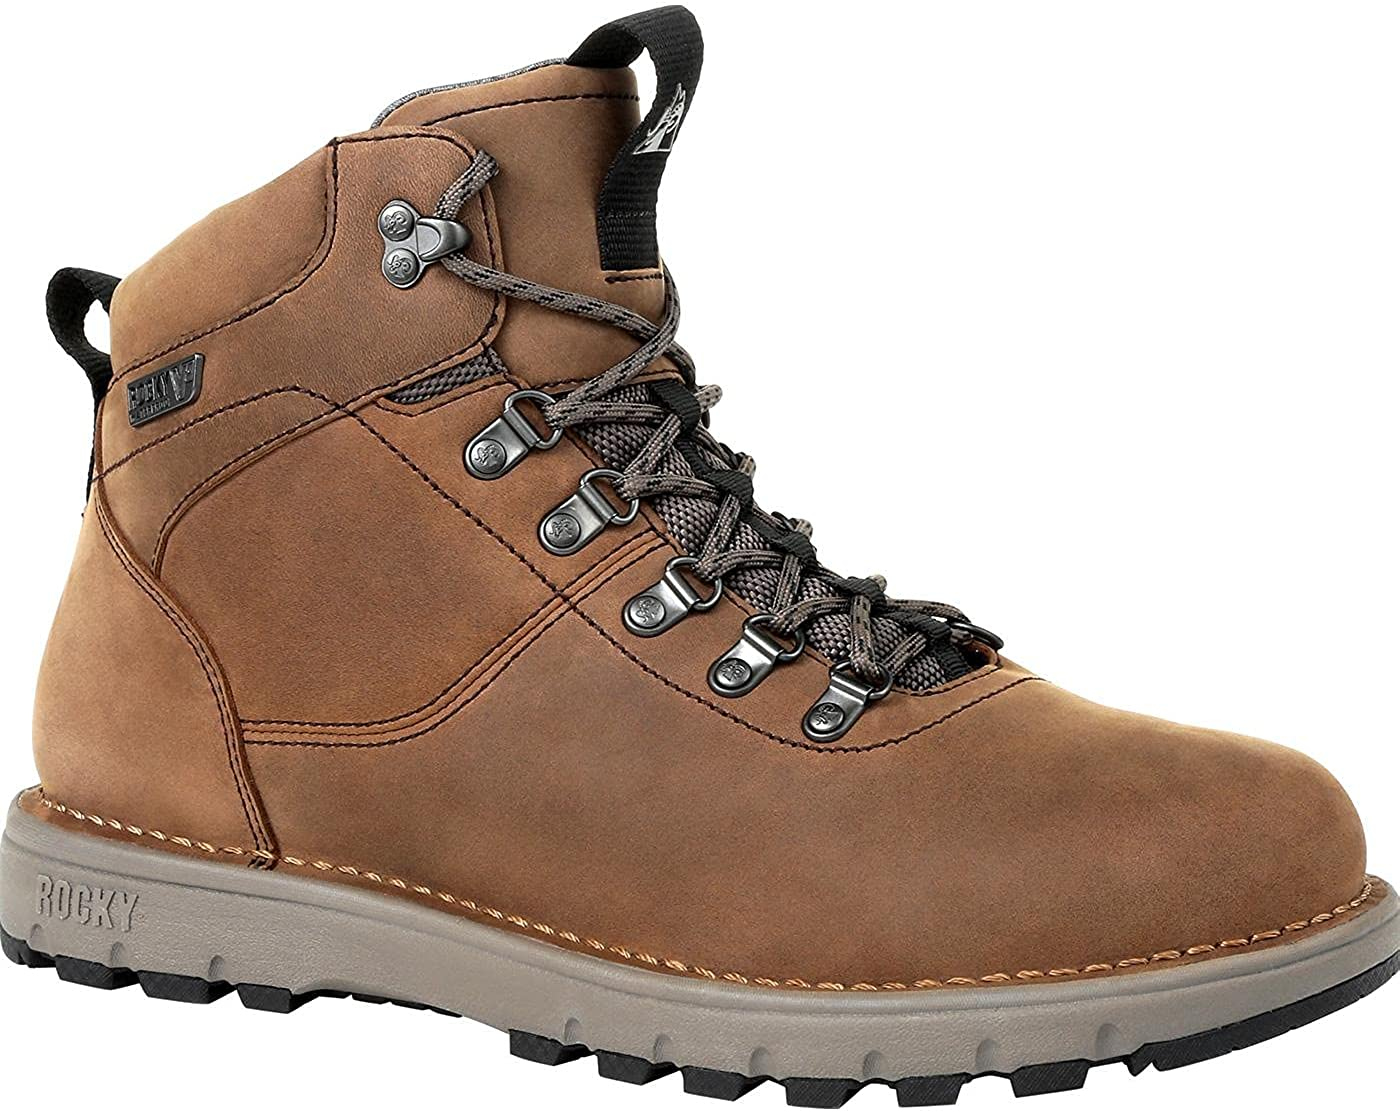 Rocky Legacy 32 Super Popular products beauty product restock quality top Boot Waterproof Hiking